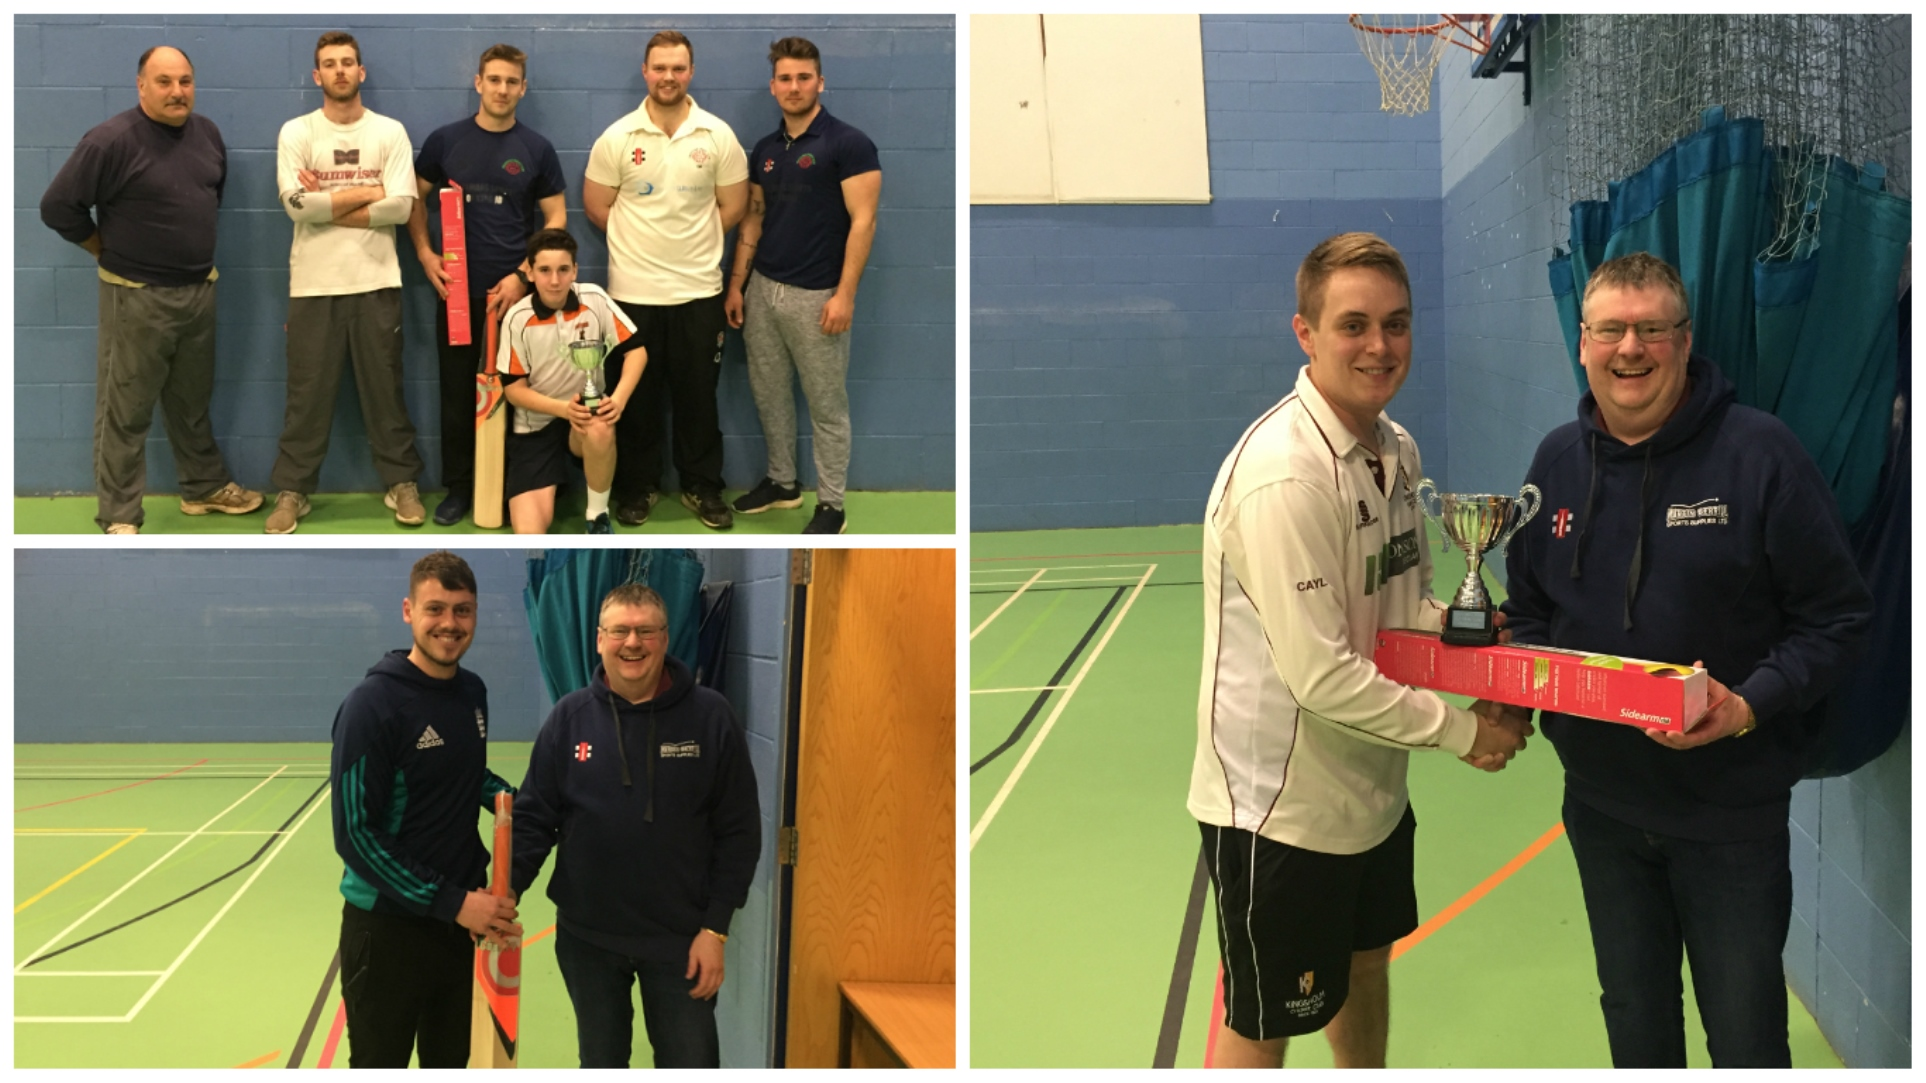 Will Gegg's on fire as Frocester claim indoor title